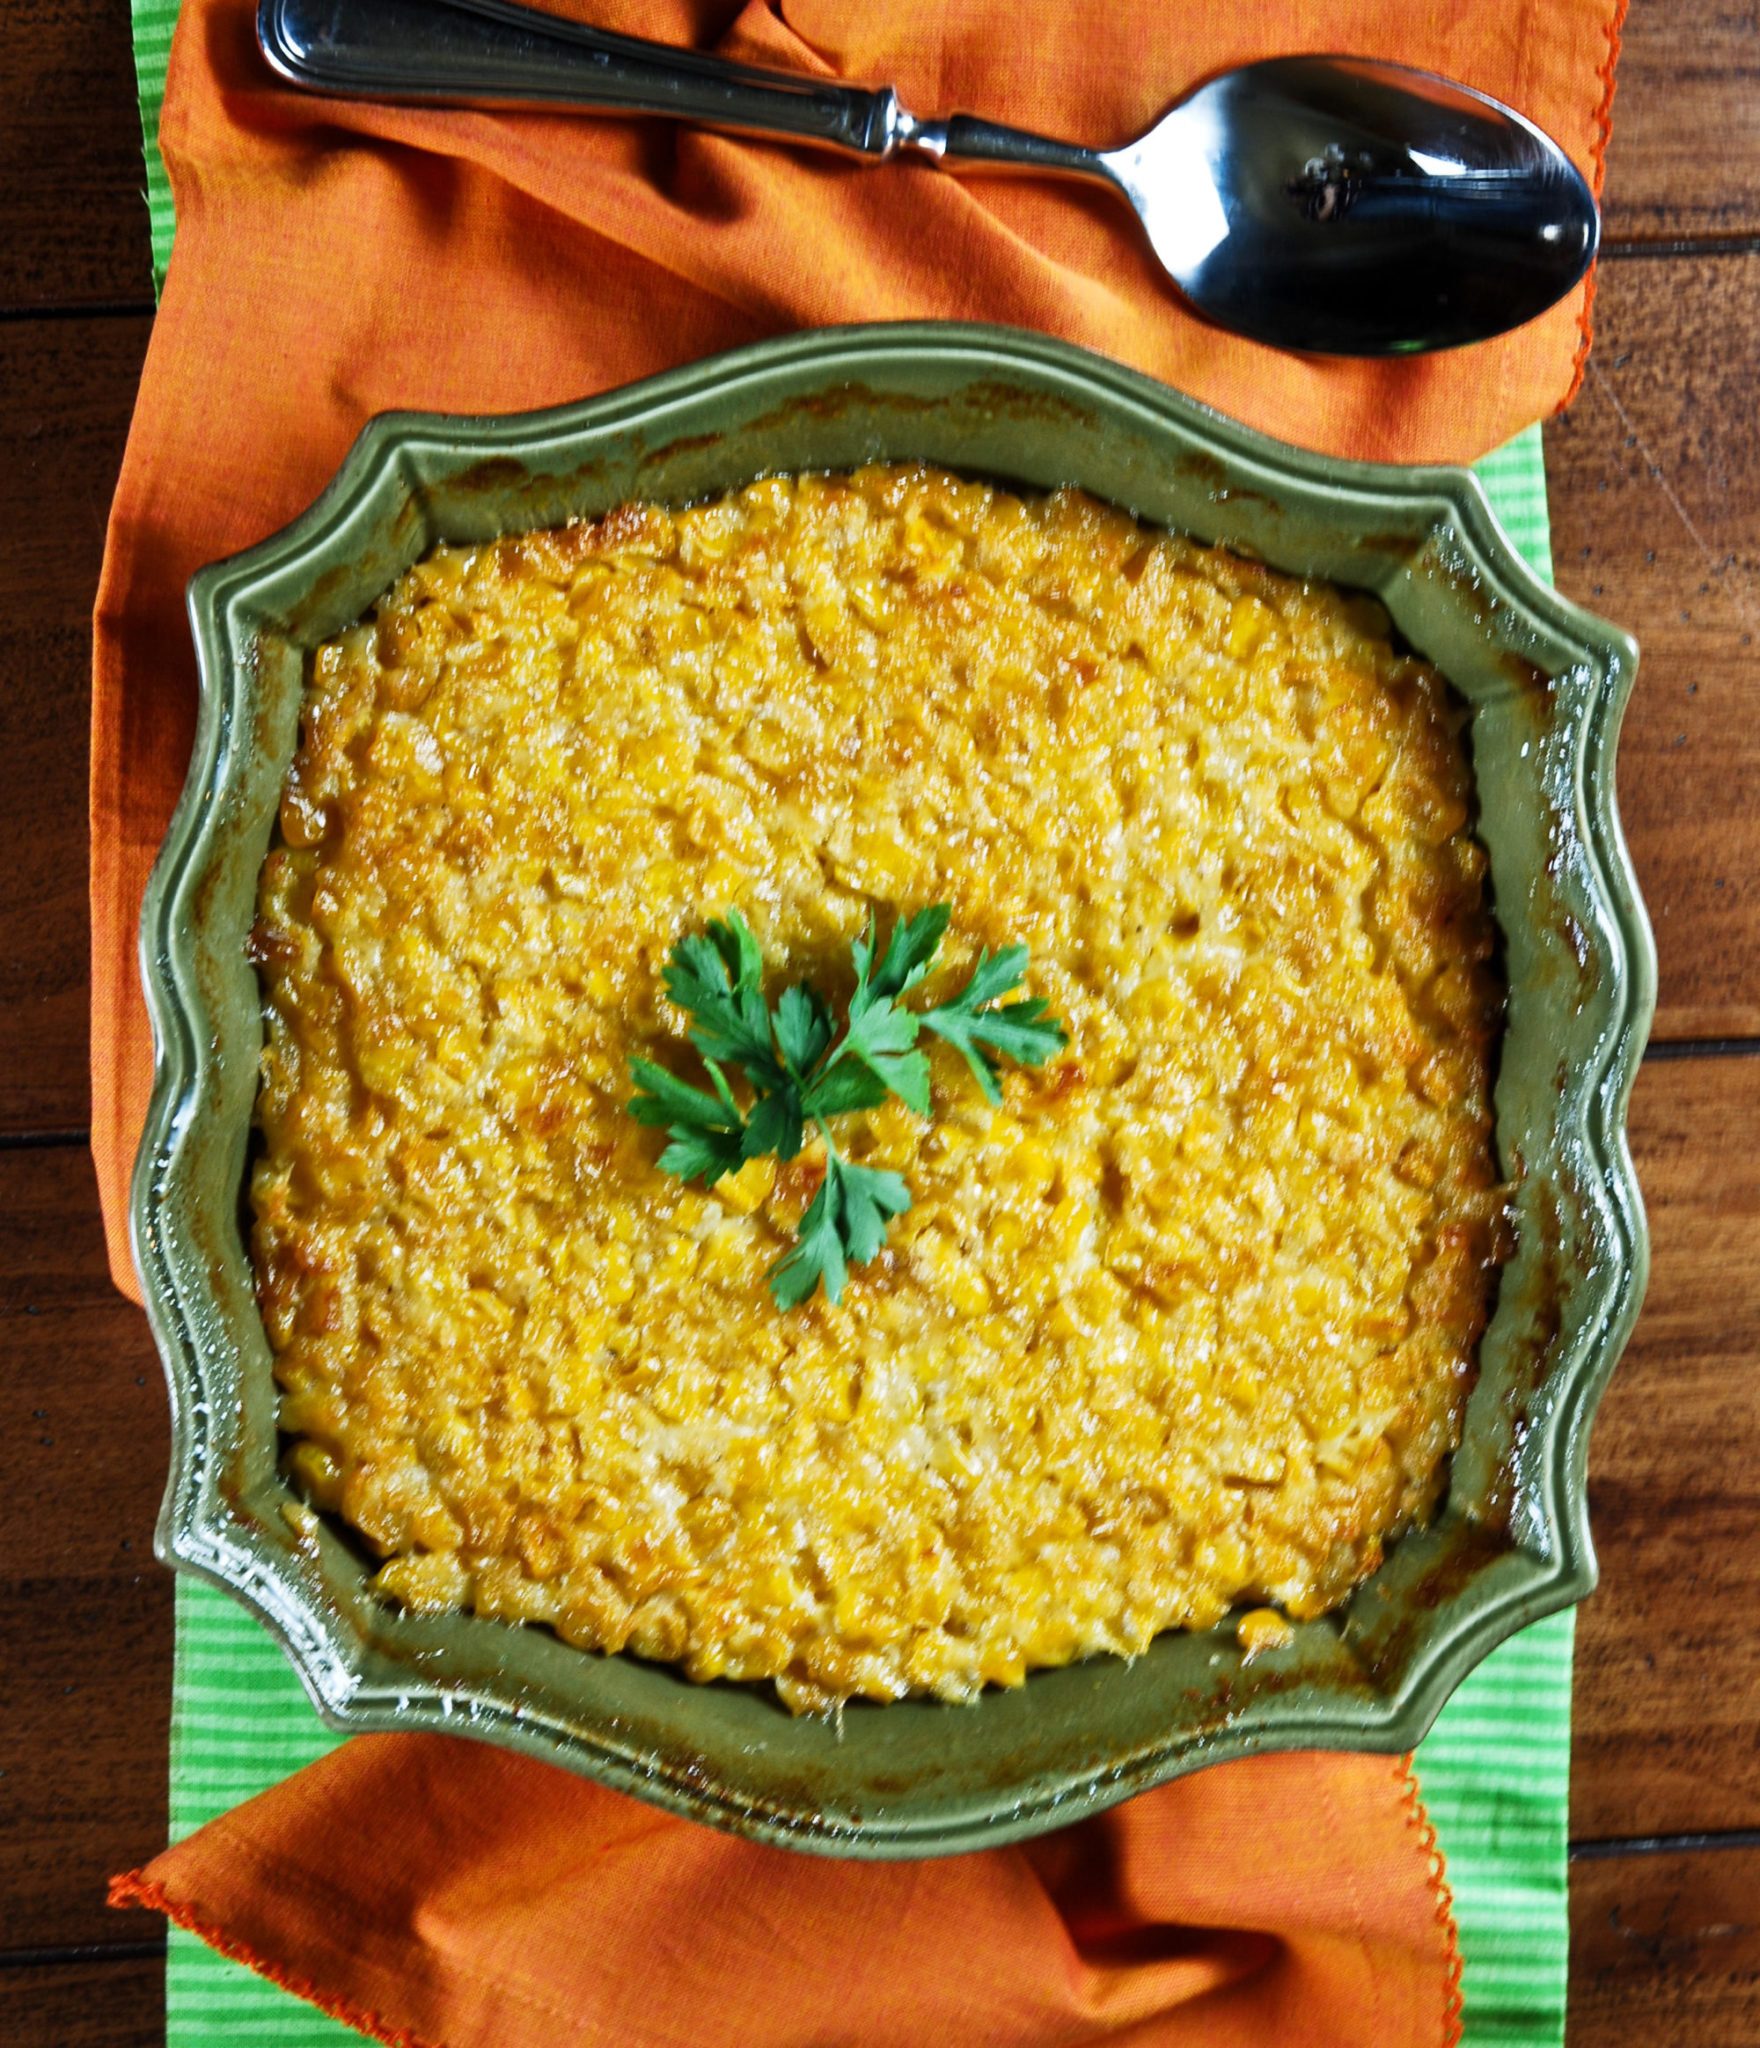 sweet corn casserole 01 (1 of 1)